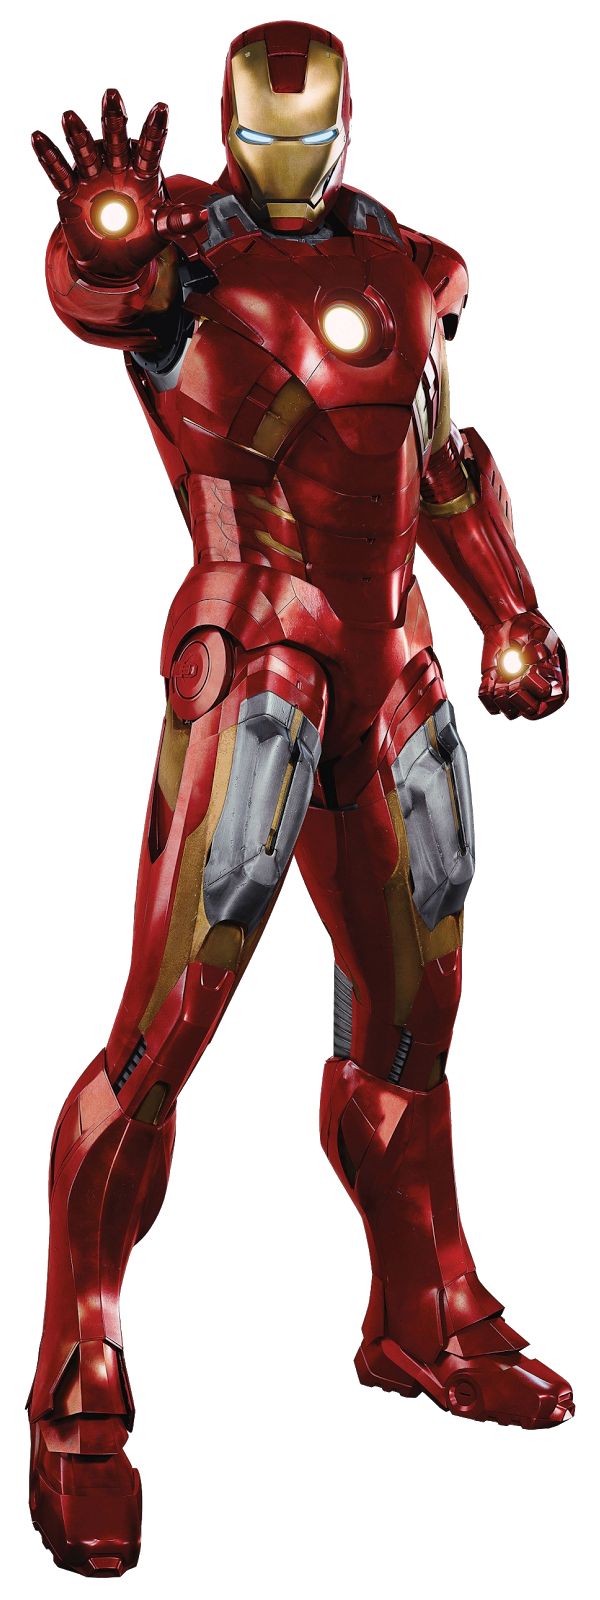 Mark VII | Iron Man Wiki | FANDOM powered by Wikia Iron Man Avengers Full Body